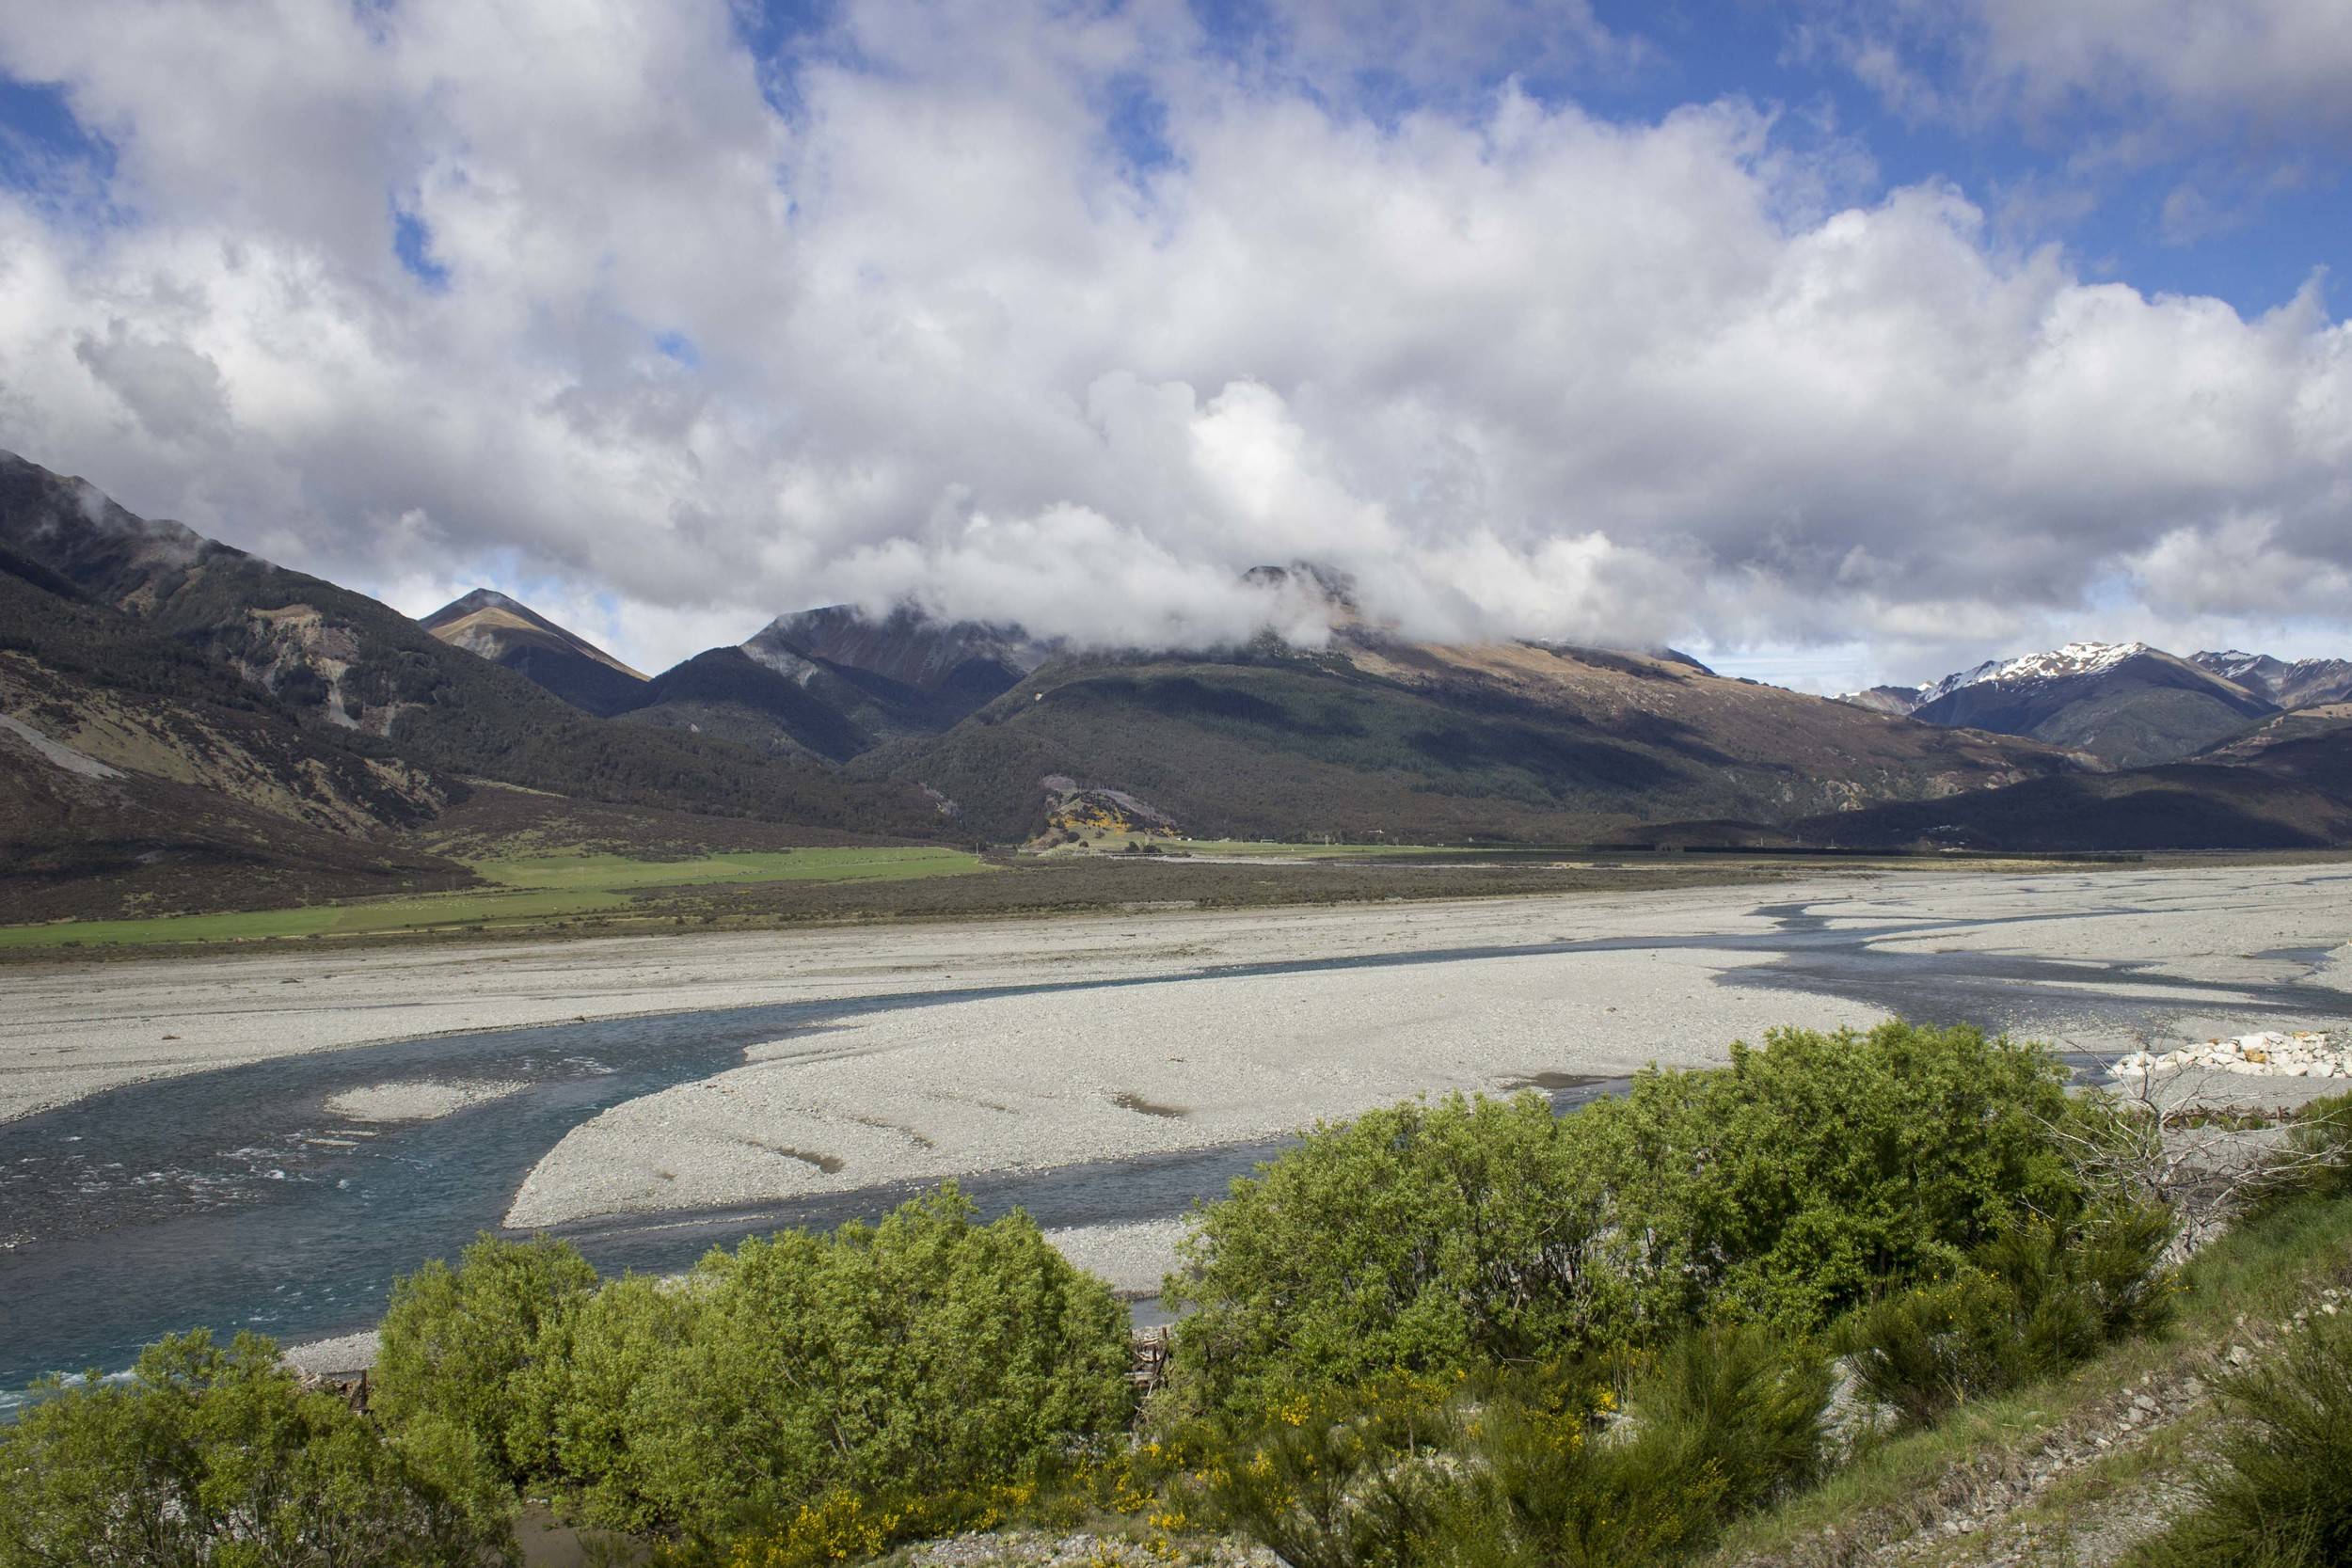 View from the TranzAlpine